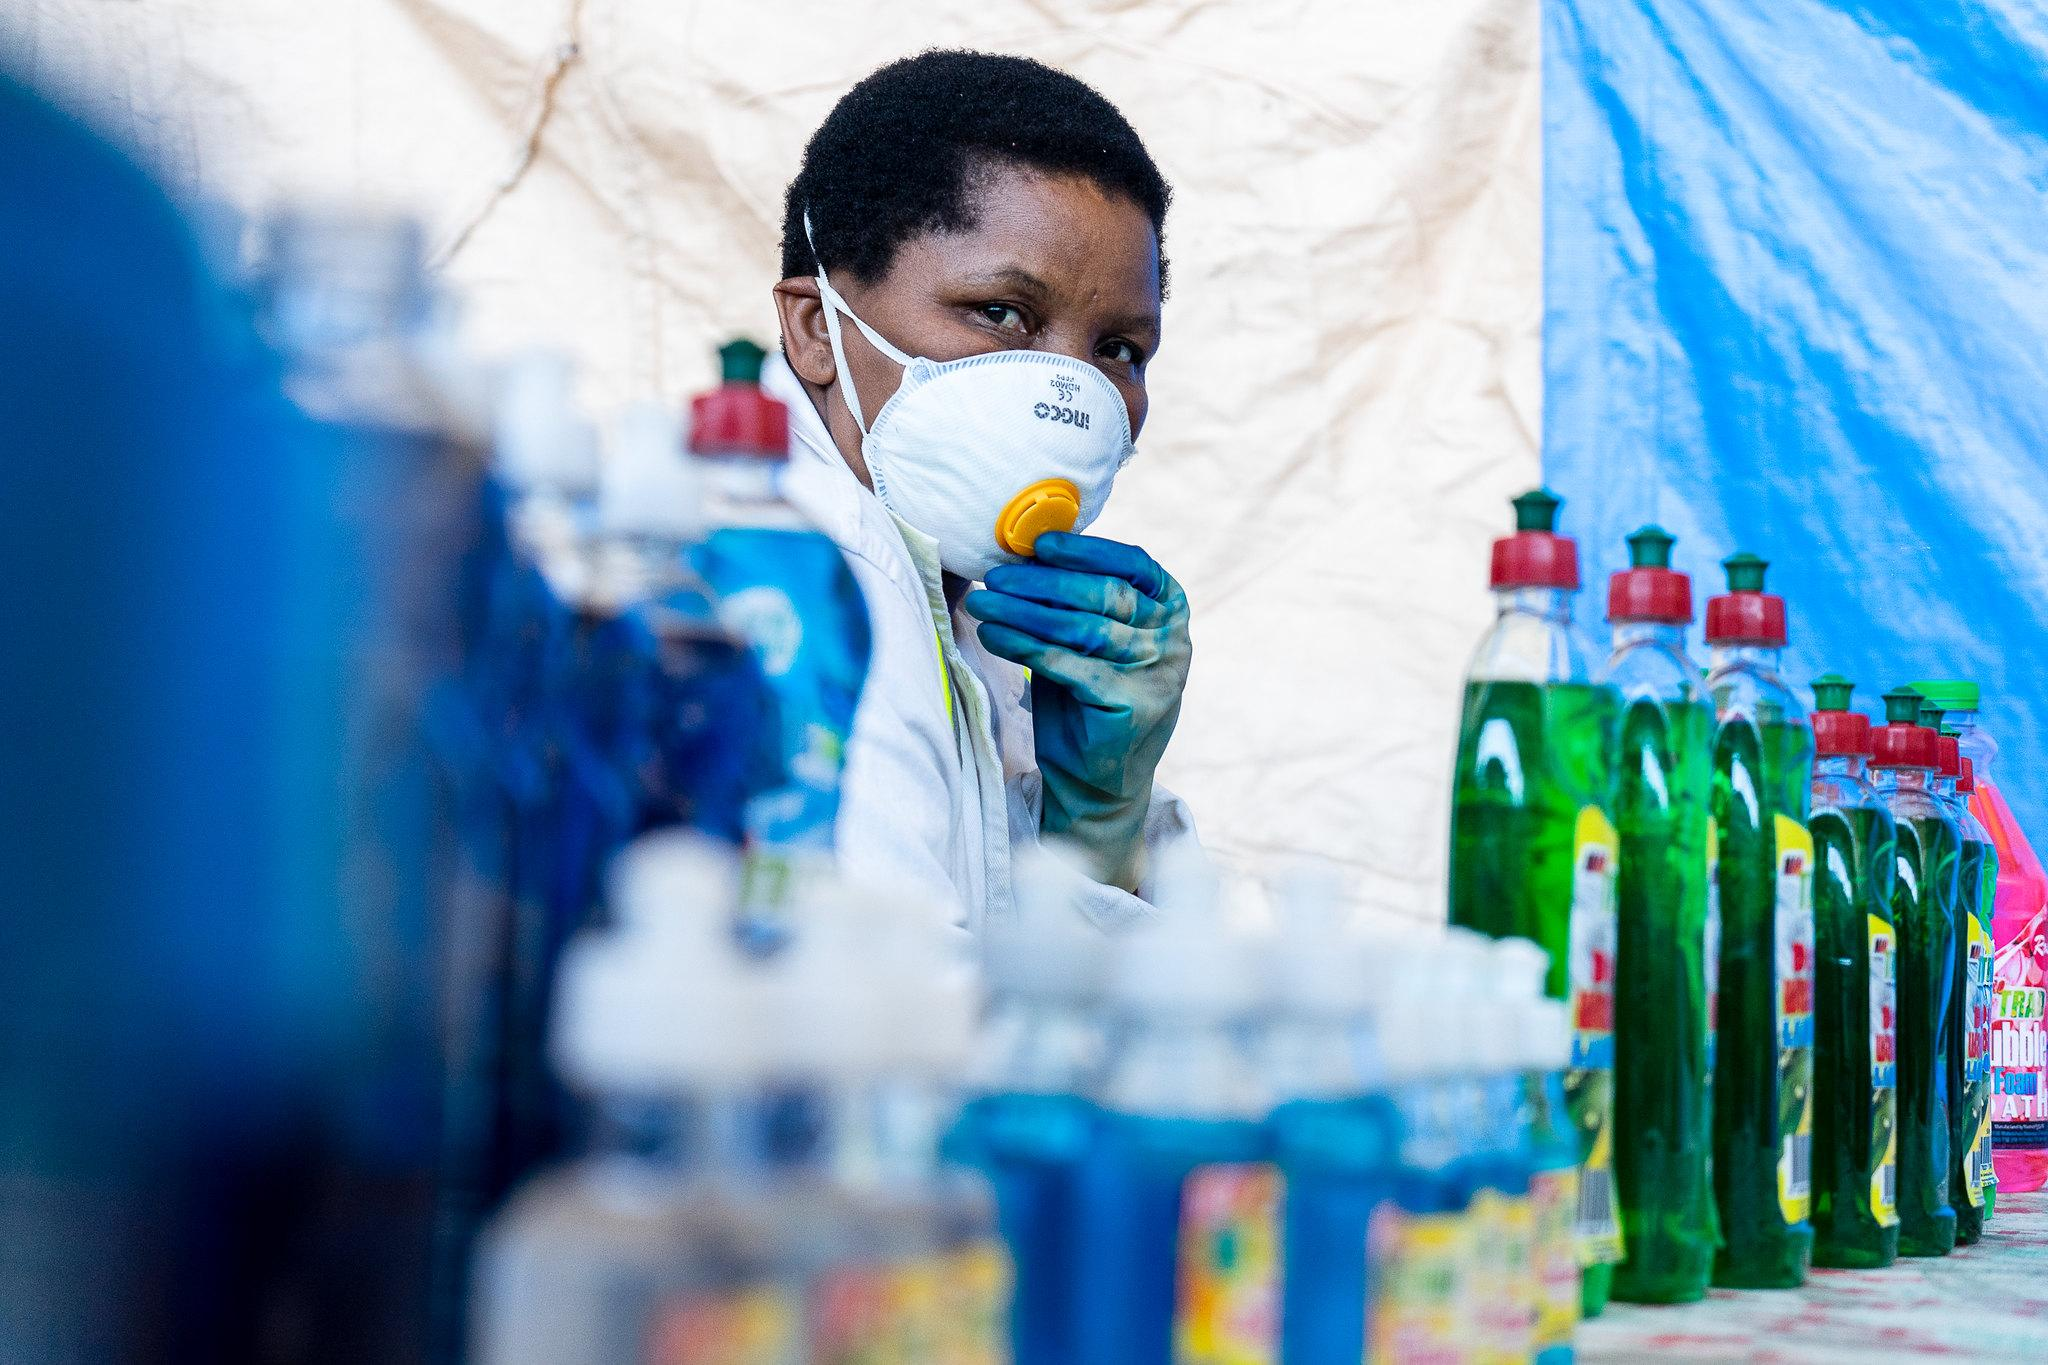 A Zimbabwean detergent manufacturing company has started making hand sanitising gel to protect against COVID-19.